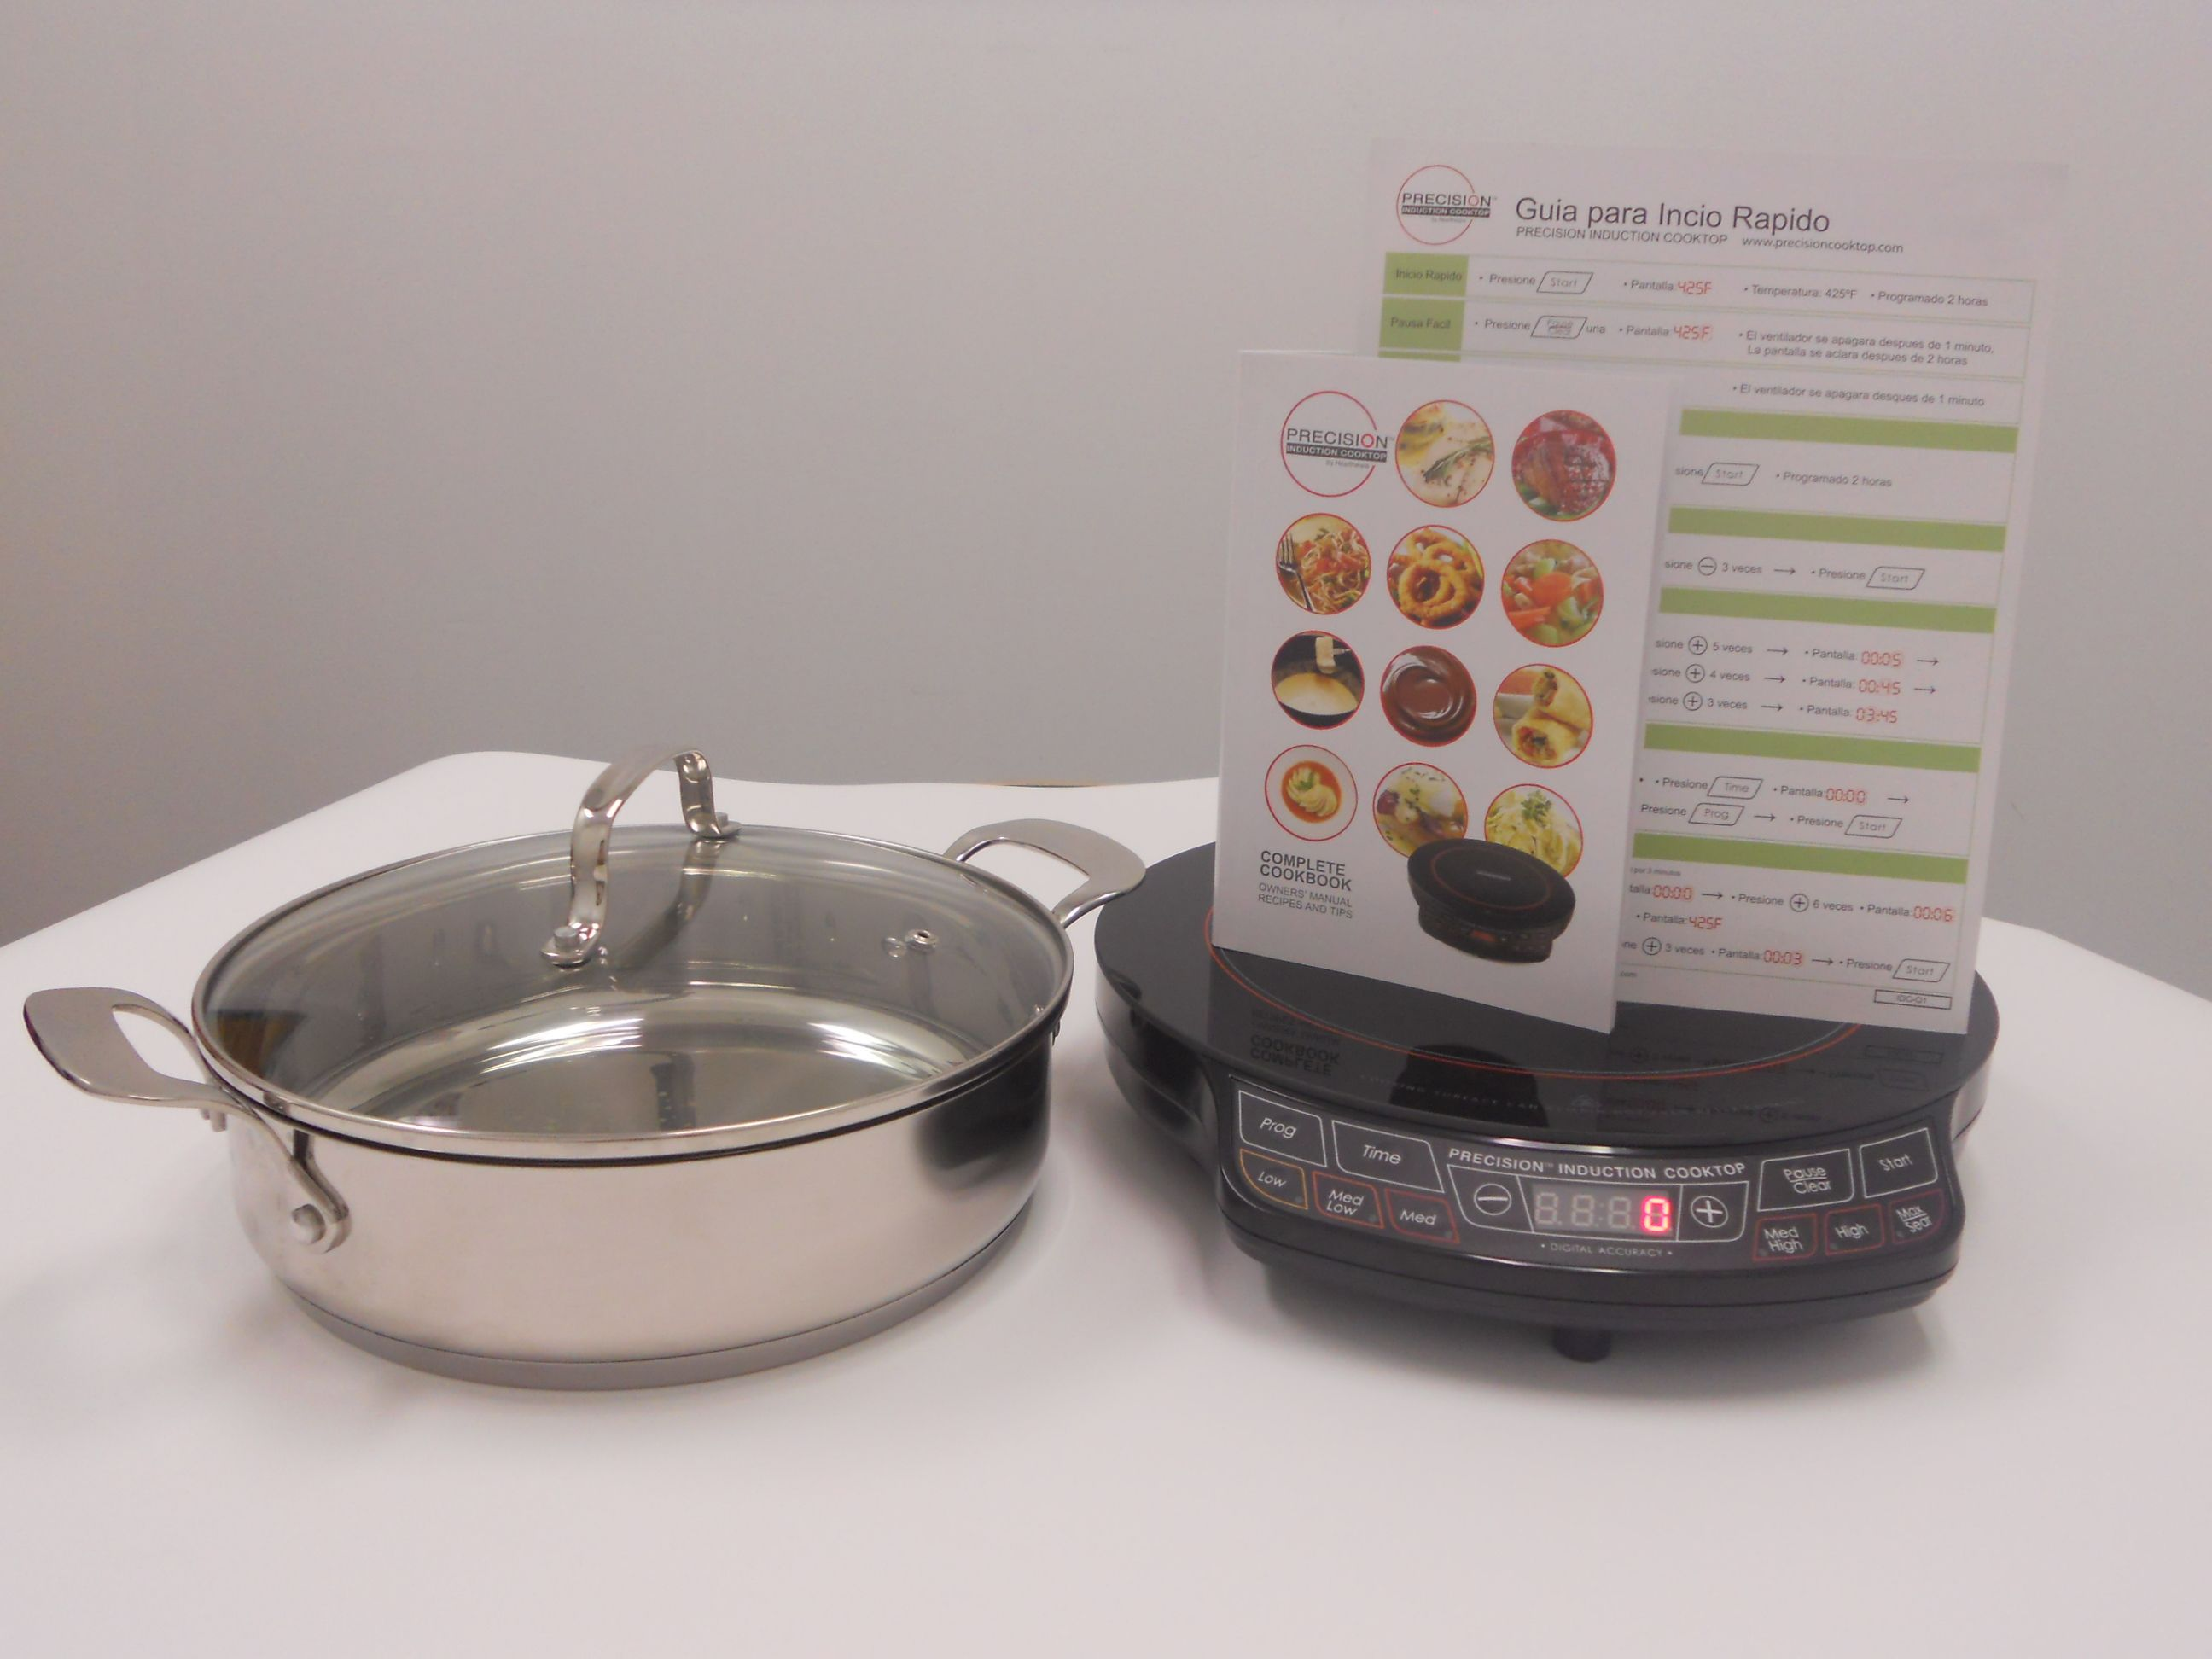 Precision Induction Cooktop Seen On Tv Nuwavepic Com Nuwave Cooktop Induction Cooktop Cooktop